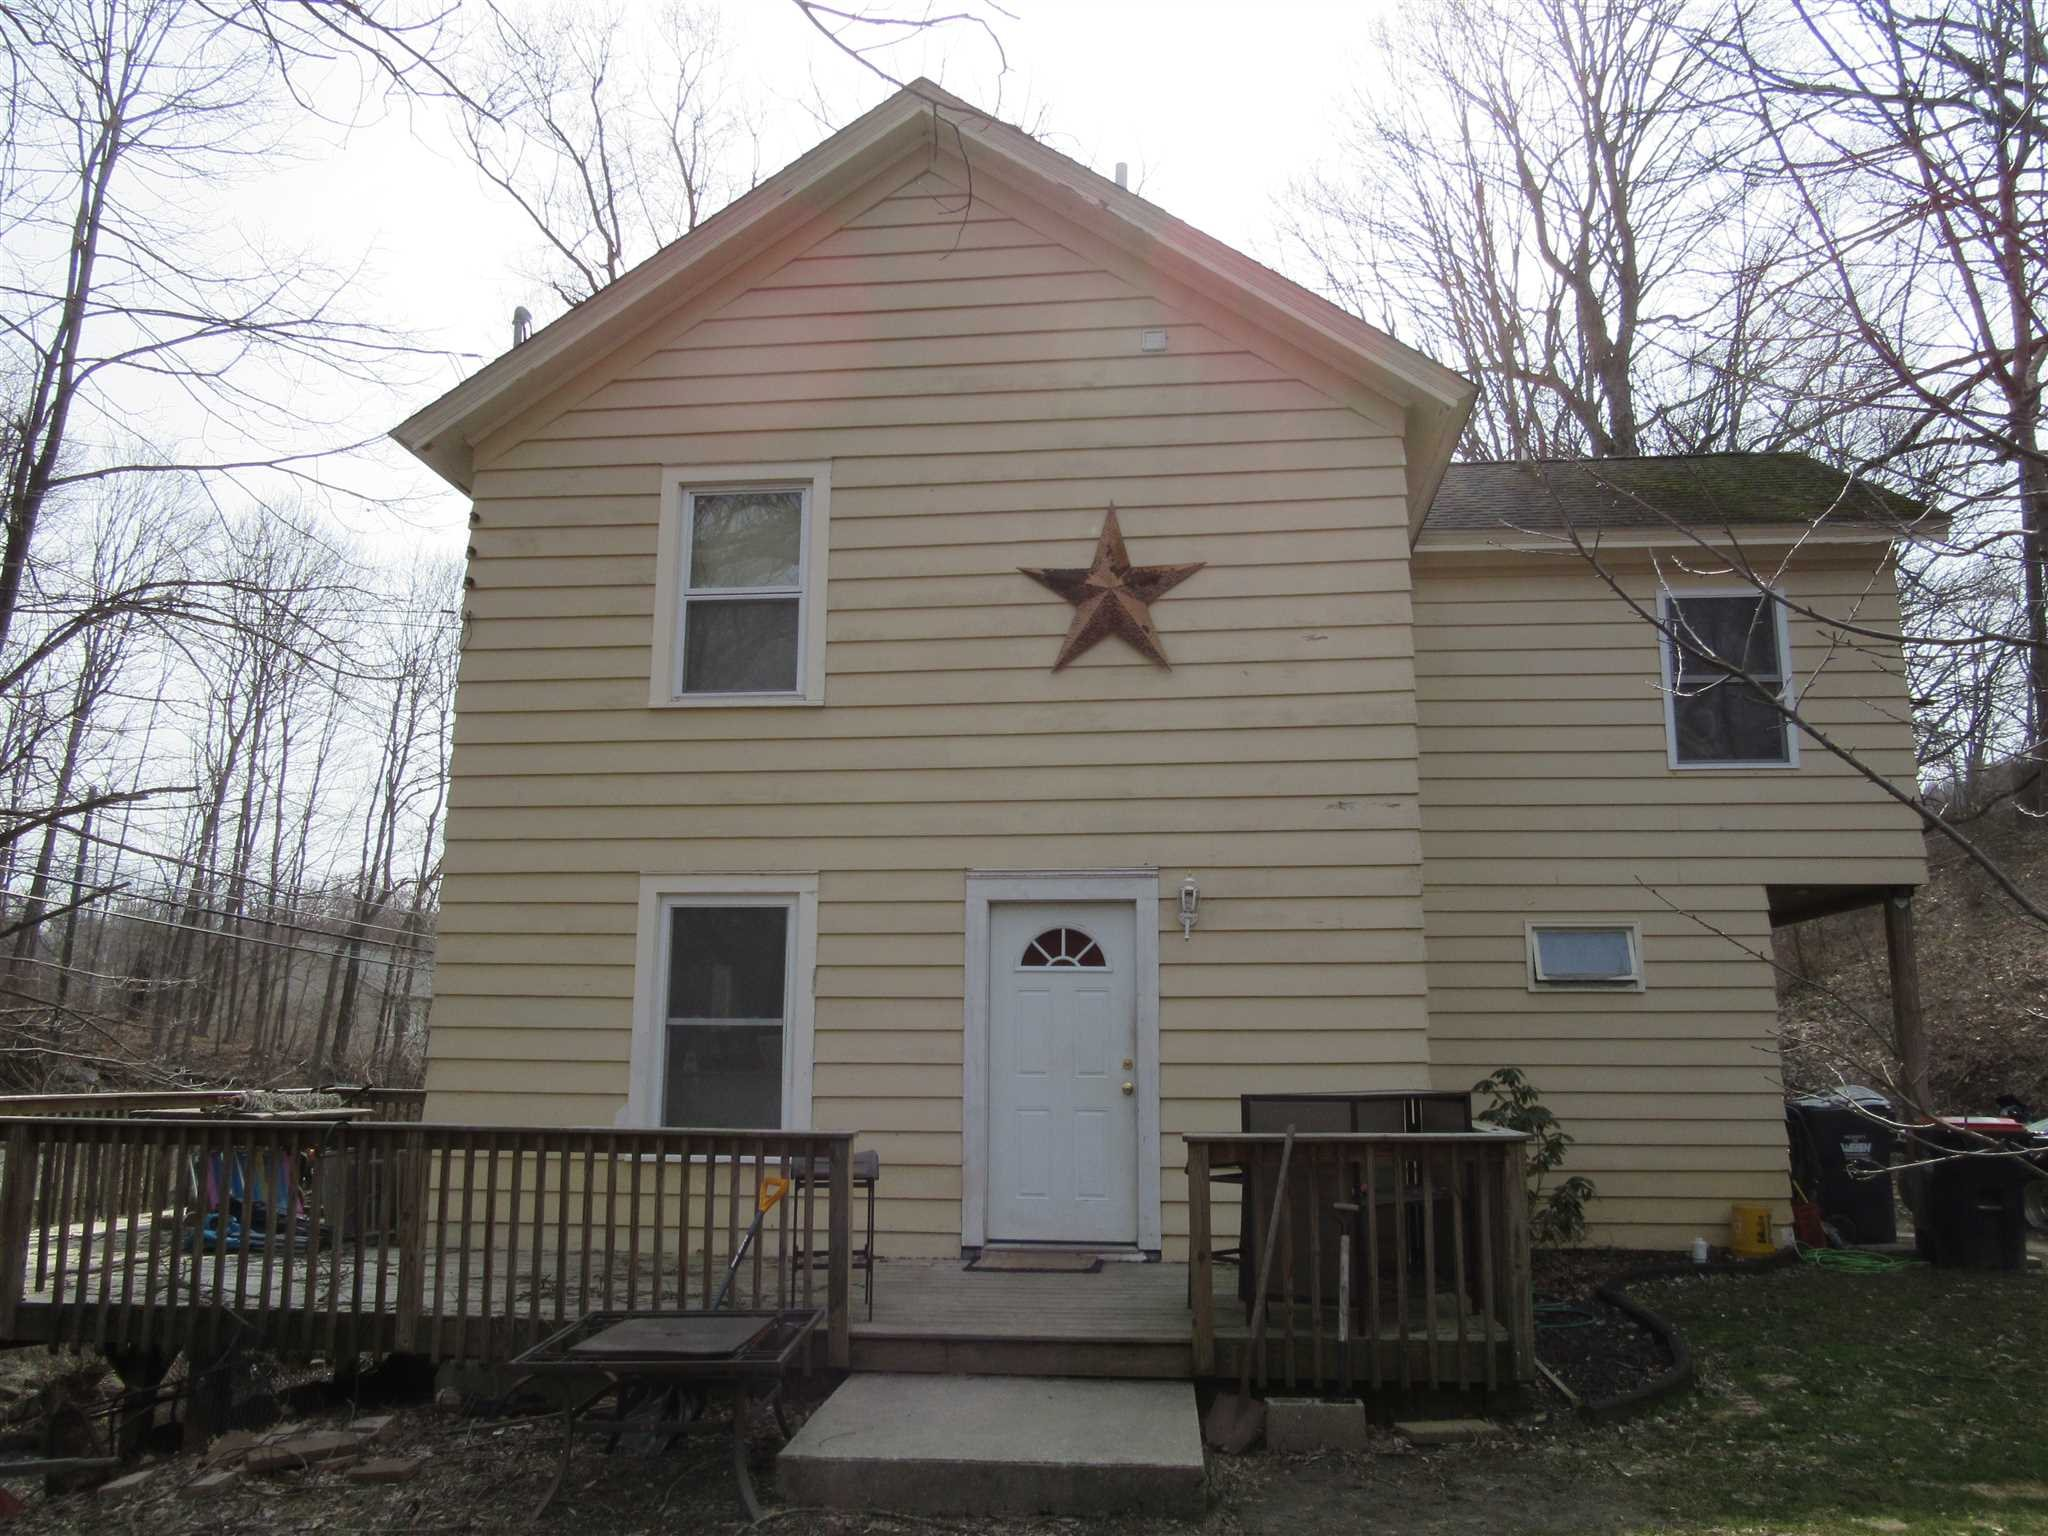 Single Family Home for Sale at OLD ROUTE 55 OLD ROUTE 55 Pawling, New York 12564 United States